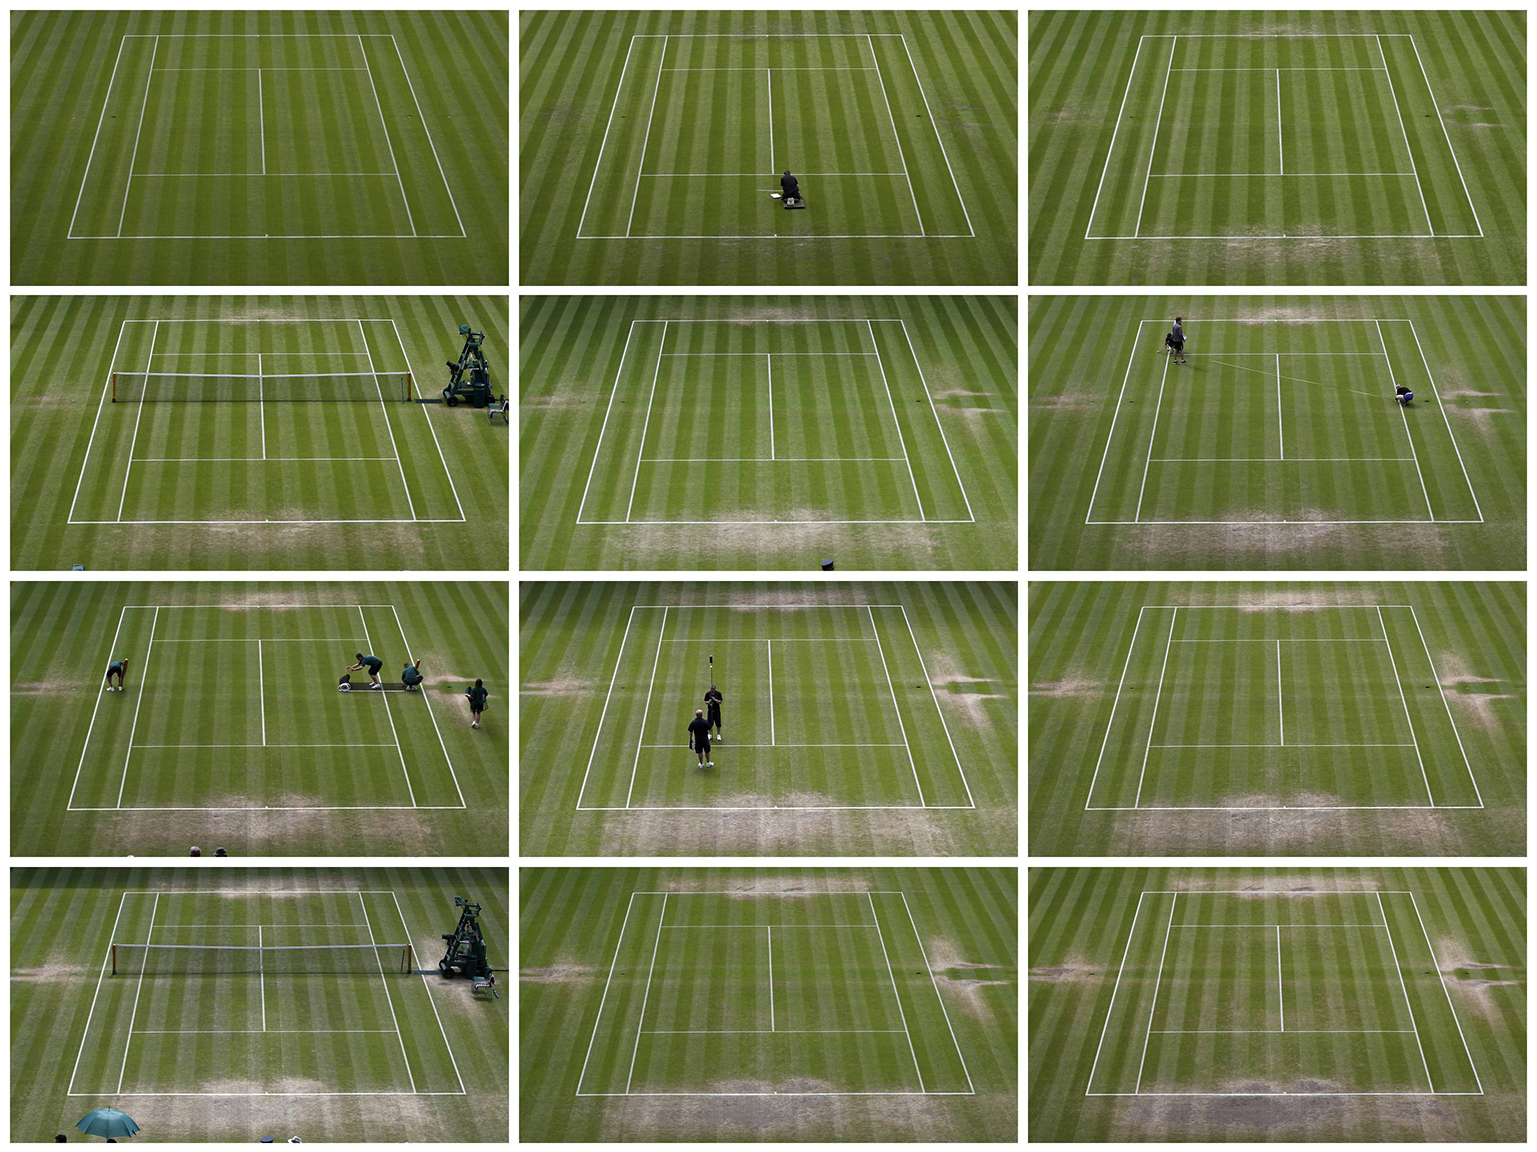 A combination of images show the grass surface of Centre Court at the All England Lawn Tennis and Croquet Club during the Wimbledon Tennis Championships in London